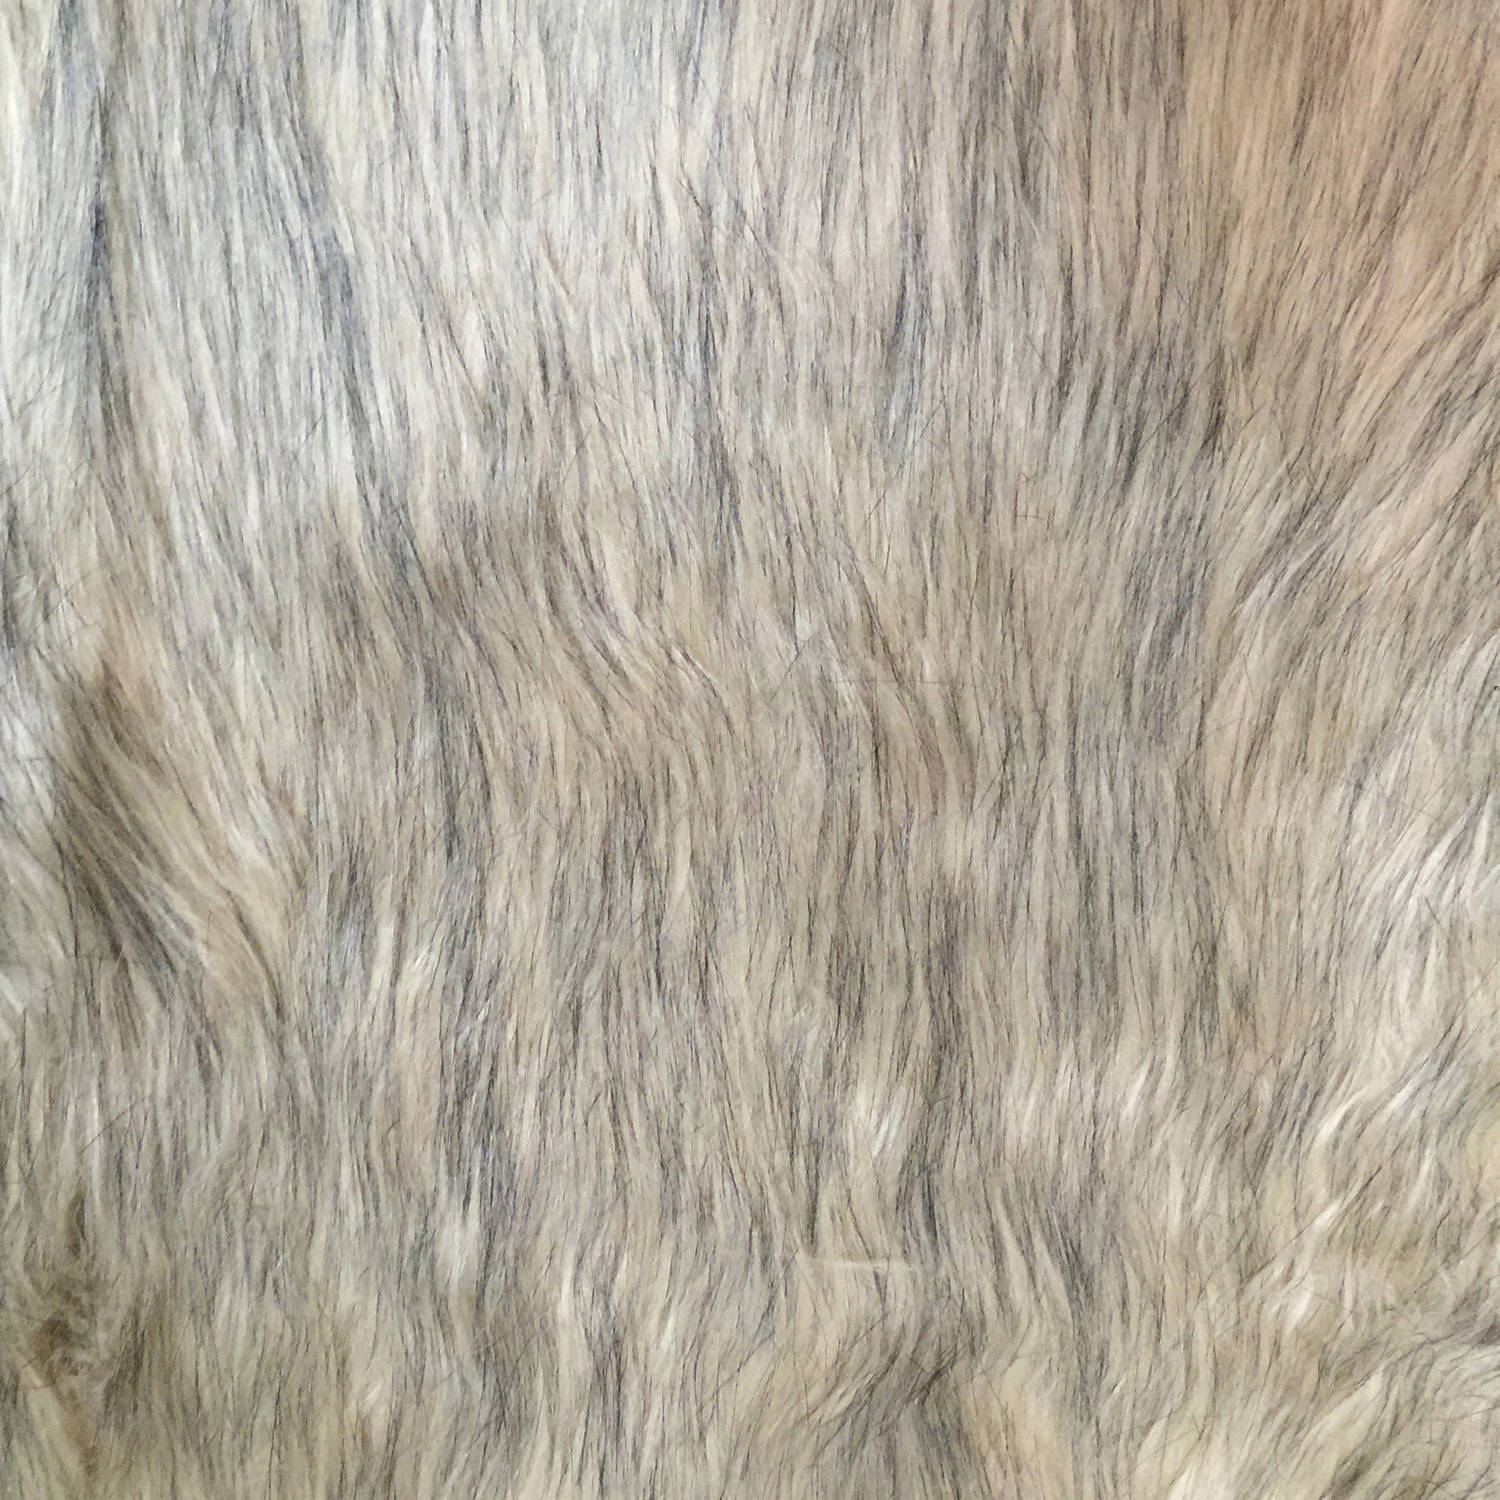 SHASON TEXTILE LUXURY FAUX FUR WOLF - LONG PILE, GRAY